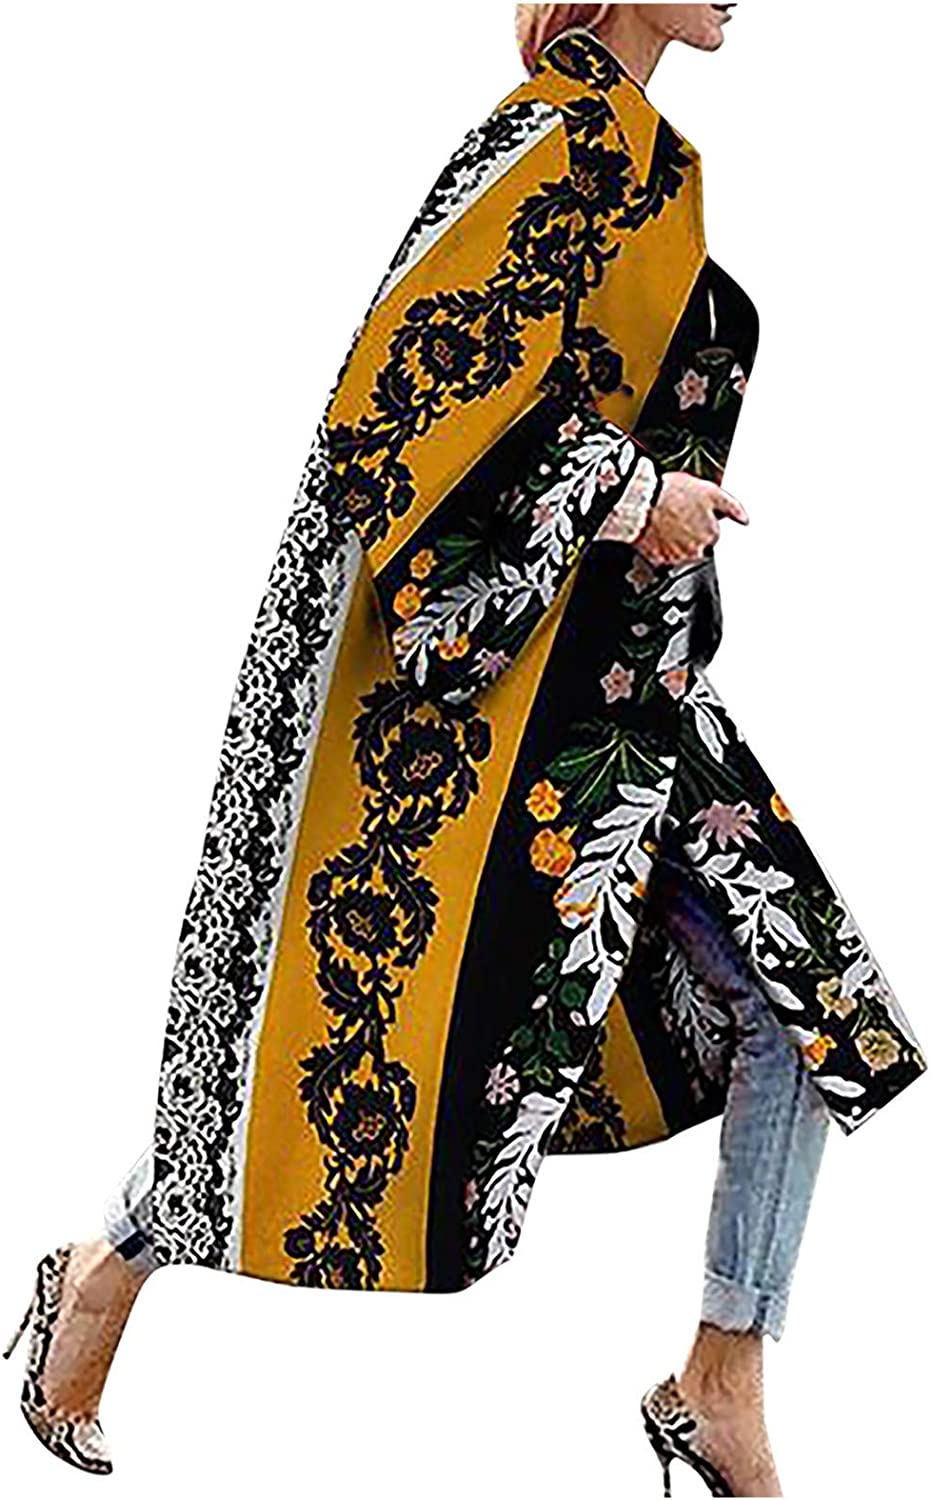 ZSBAYU Trendy Fall Jackets Long Cardigan Coats Women Winter Jacket Flare Bell Sleeves Multicolored Ethnic Casual Outwear